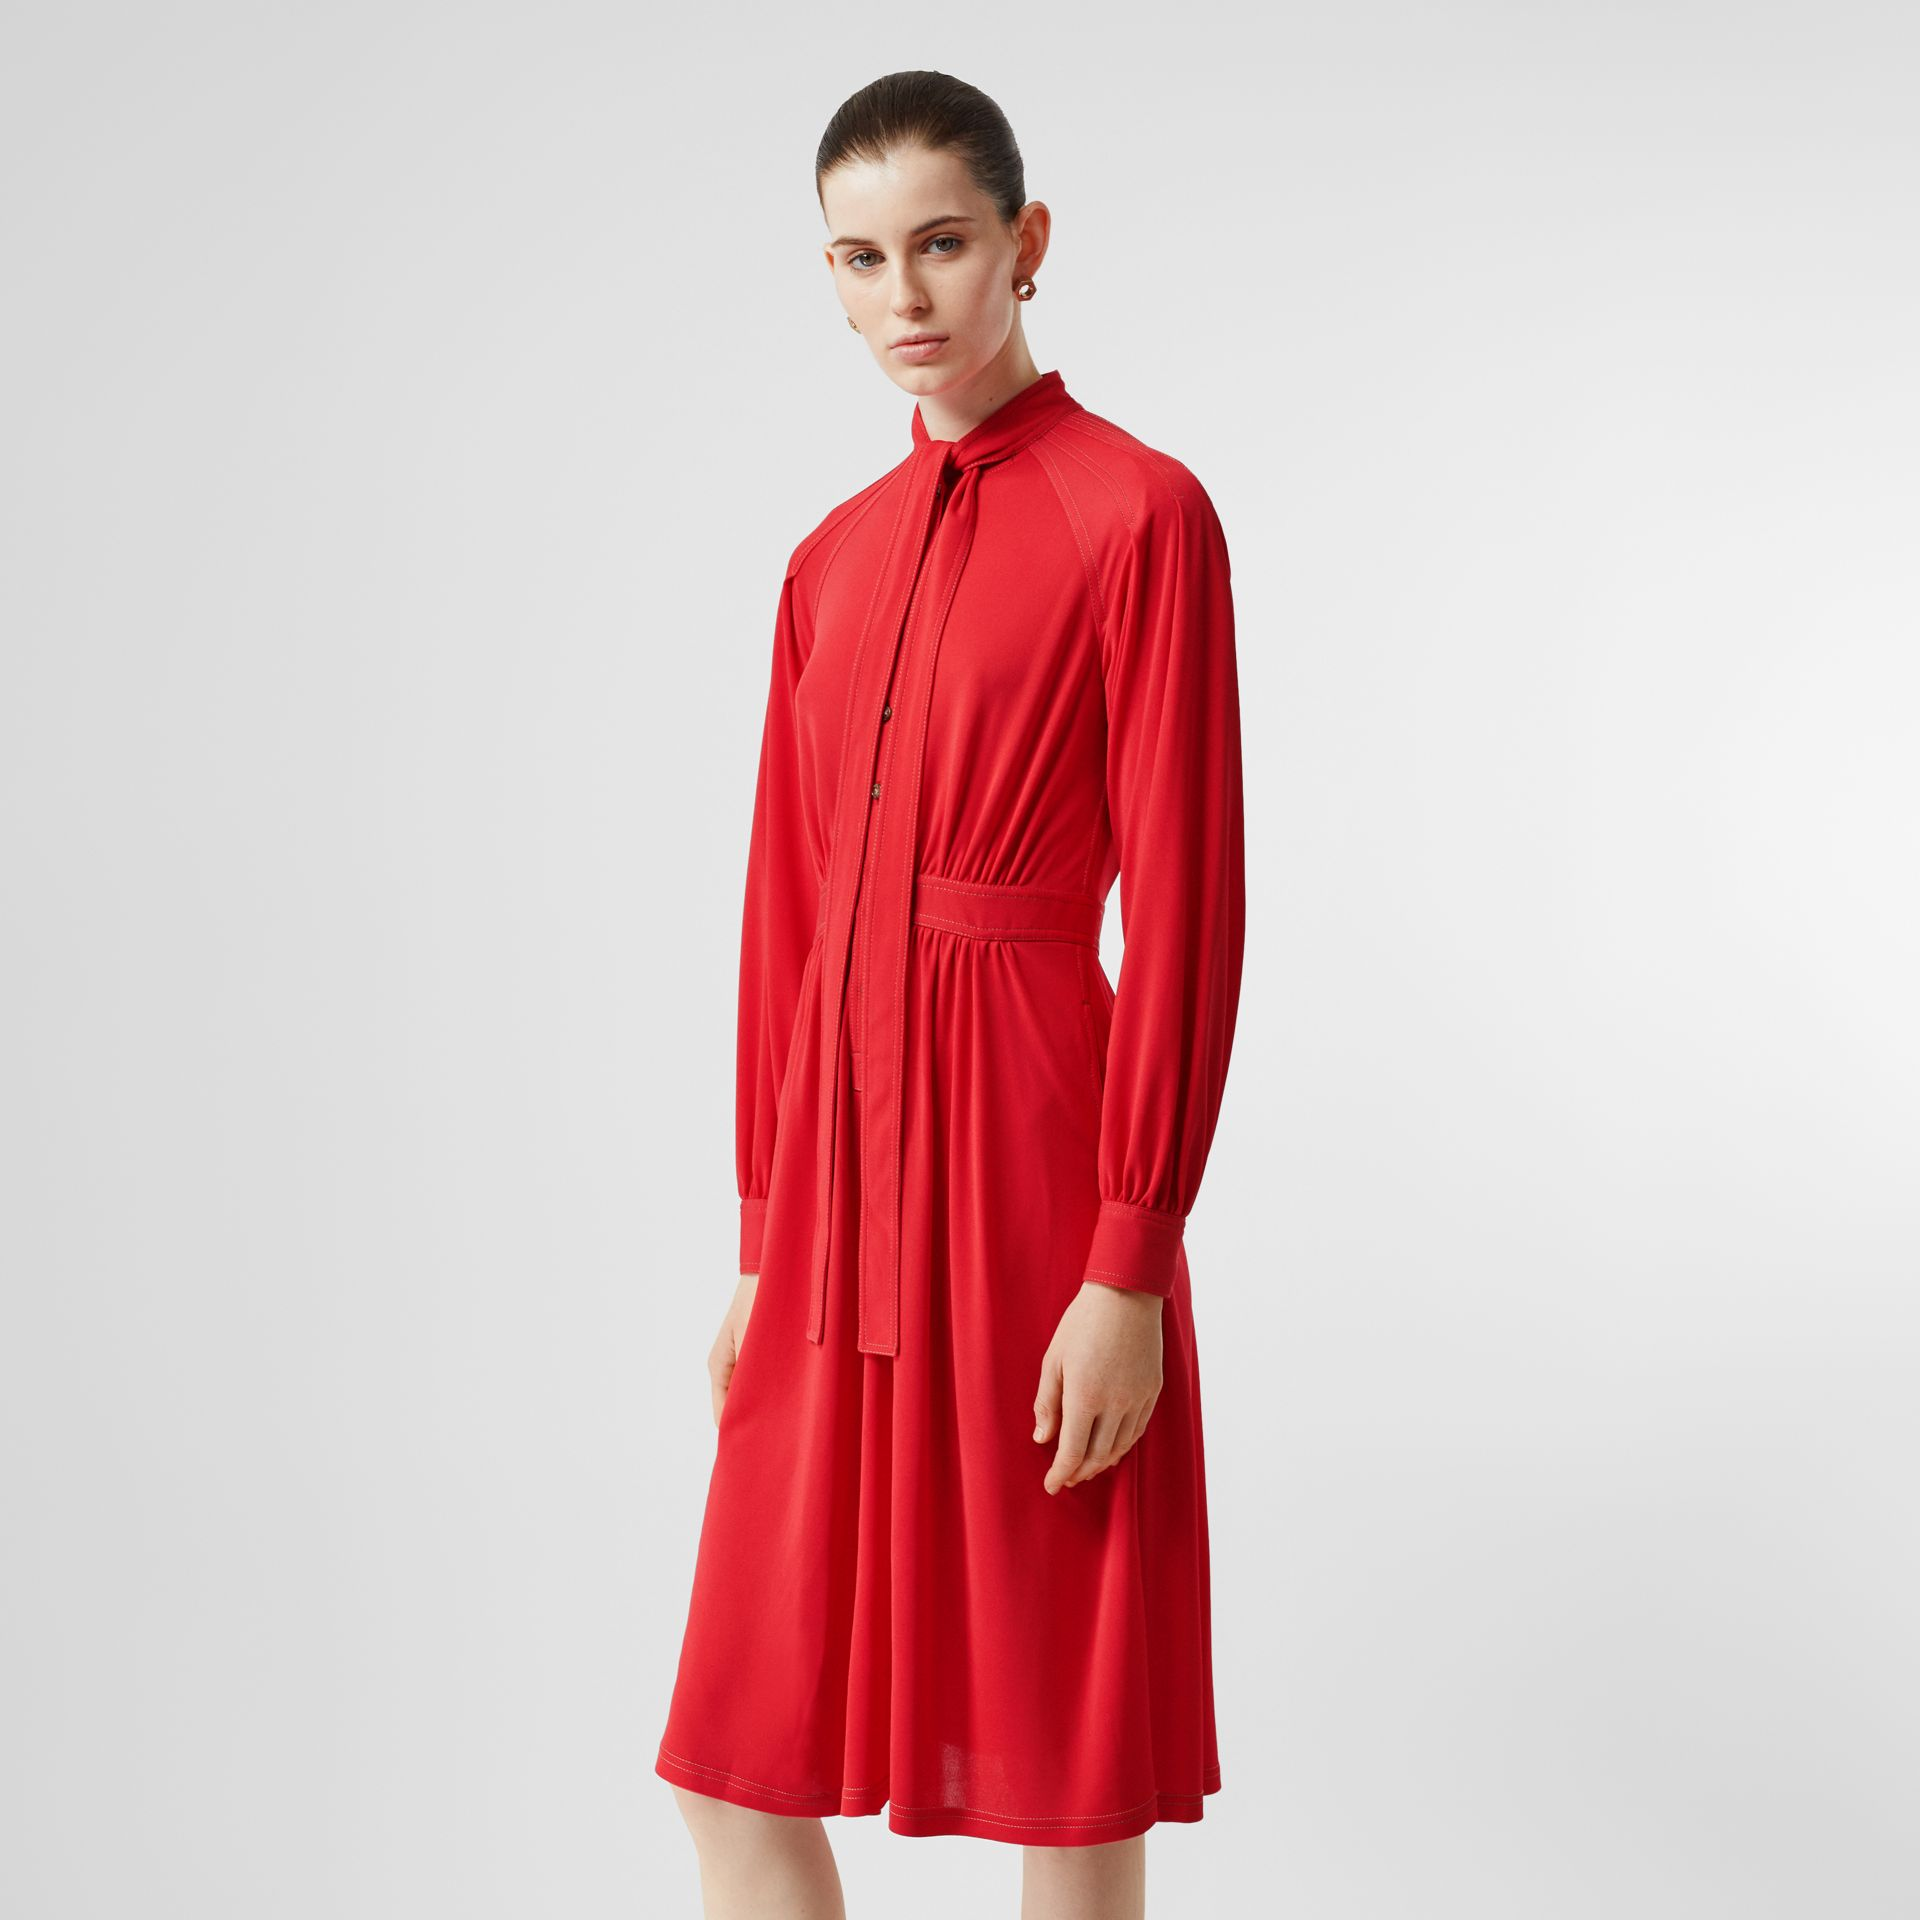 Topstitch Detail Jersey Tie-neck Dress in Bright Red - Women | Burberry Australia - gallery image 5